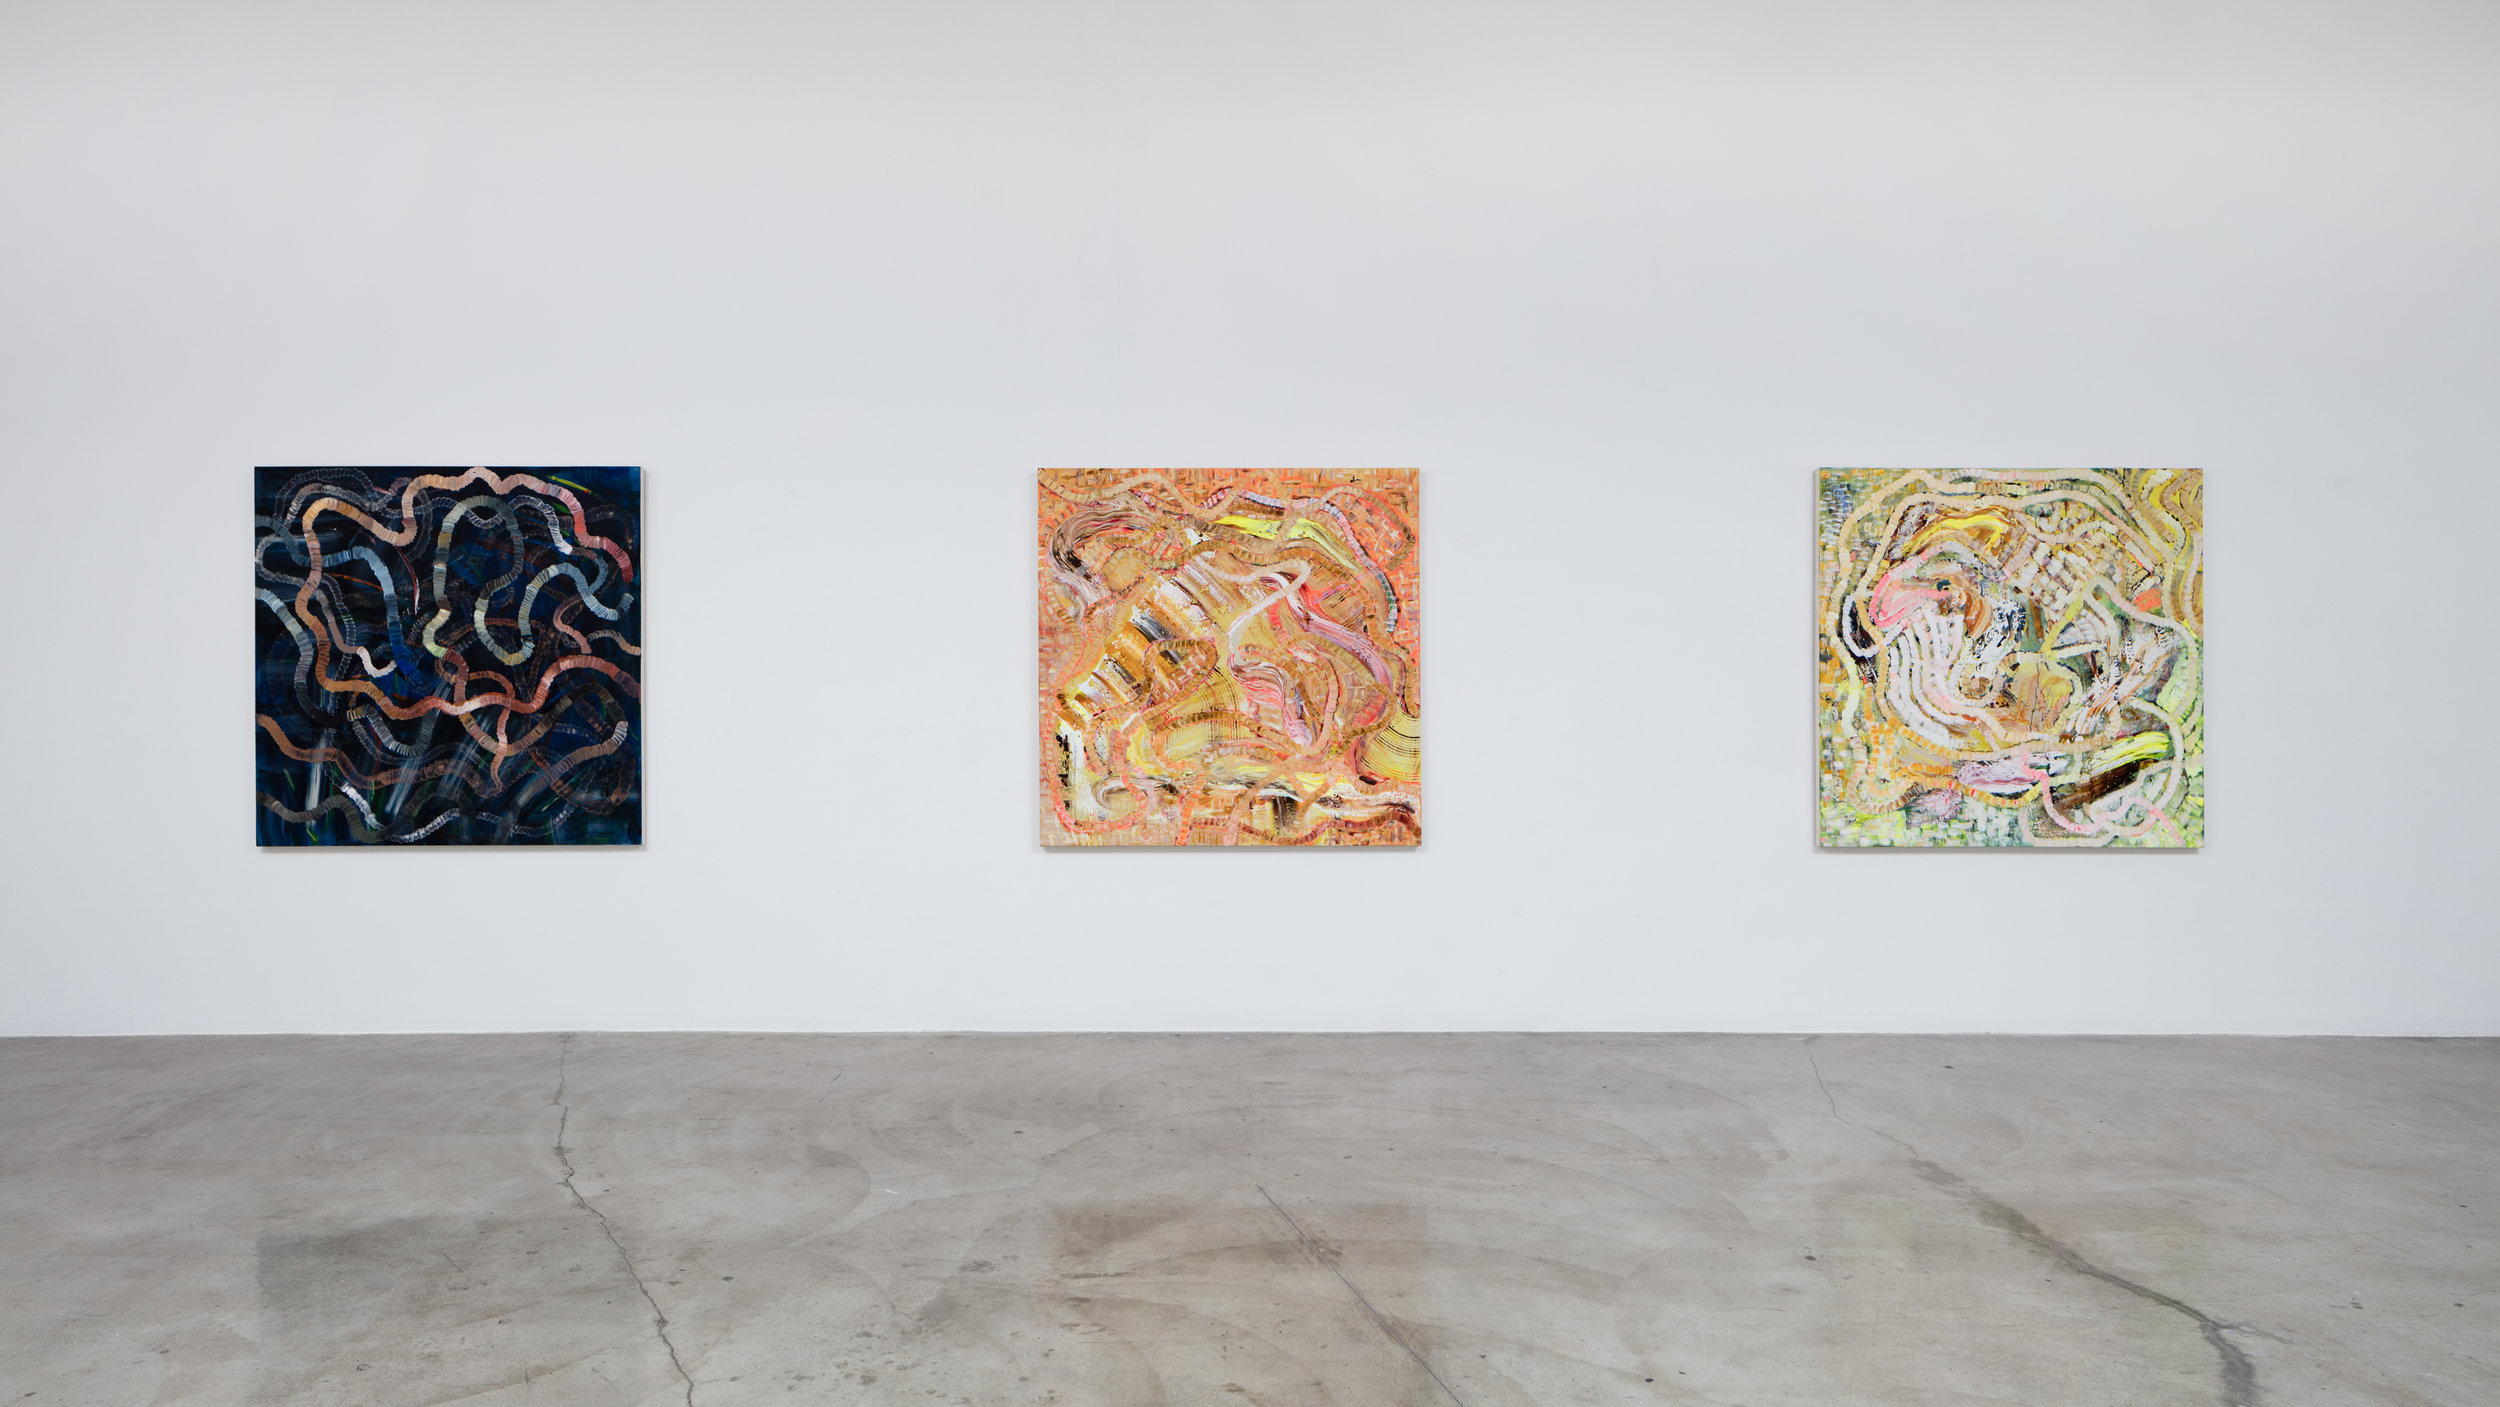 UNSEEN FORCES, 2019 INSTALLATION SHOT